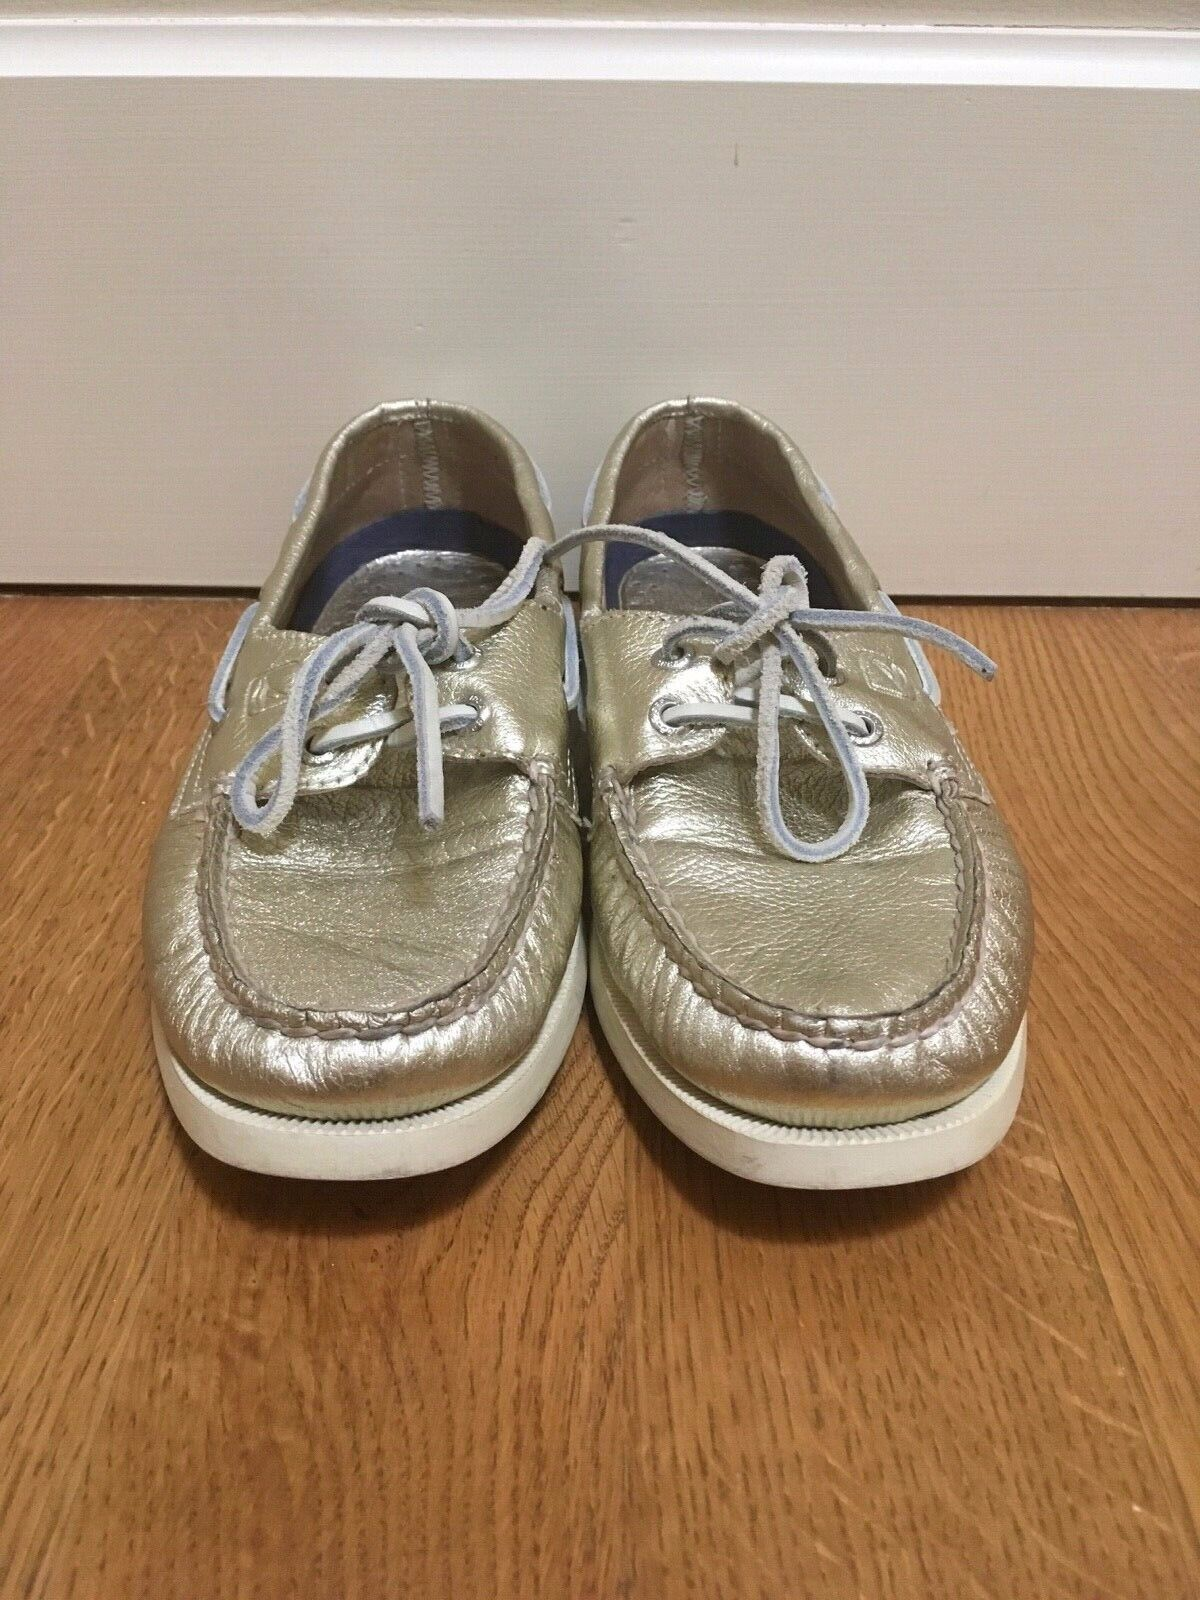 Sperry Top-Sider Women's Gold Shoes